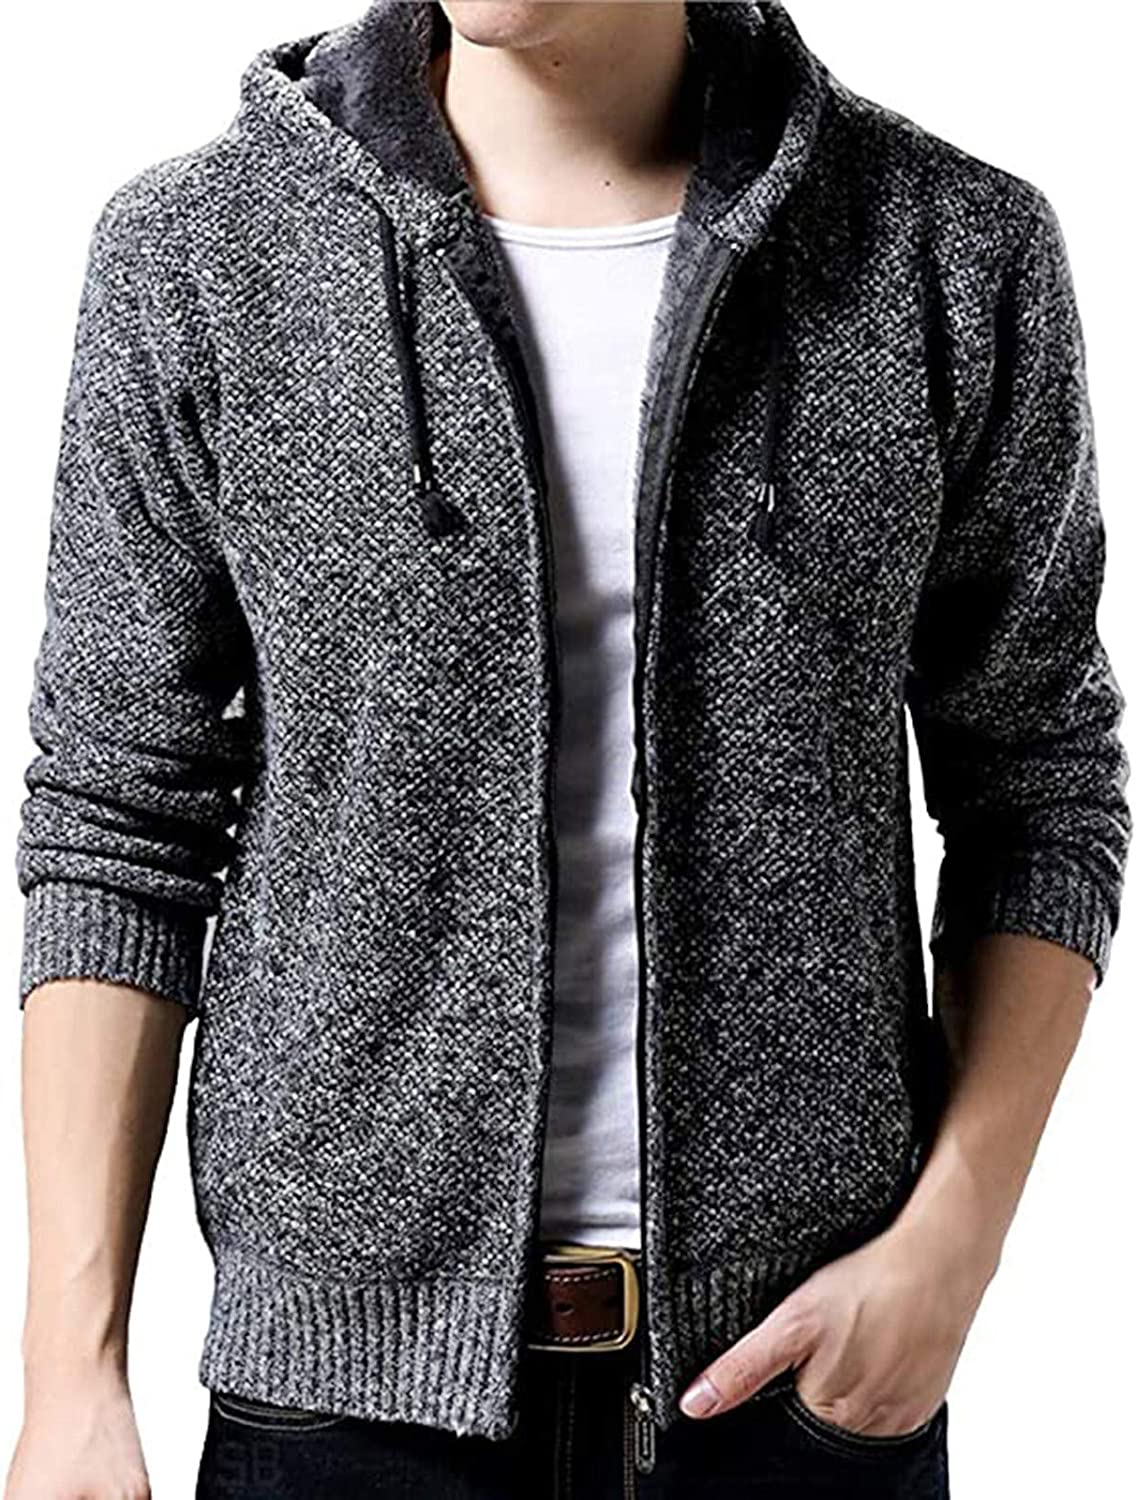 Men's Casual Hipster Hoodies Cardigan Sweaters Jackets Full Zip Knitted Open Front Cotton Cardigans Jackets